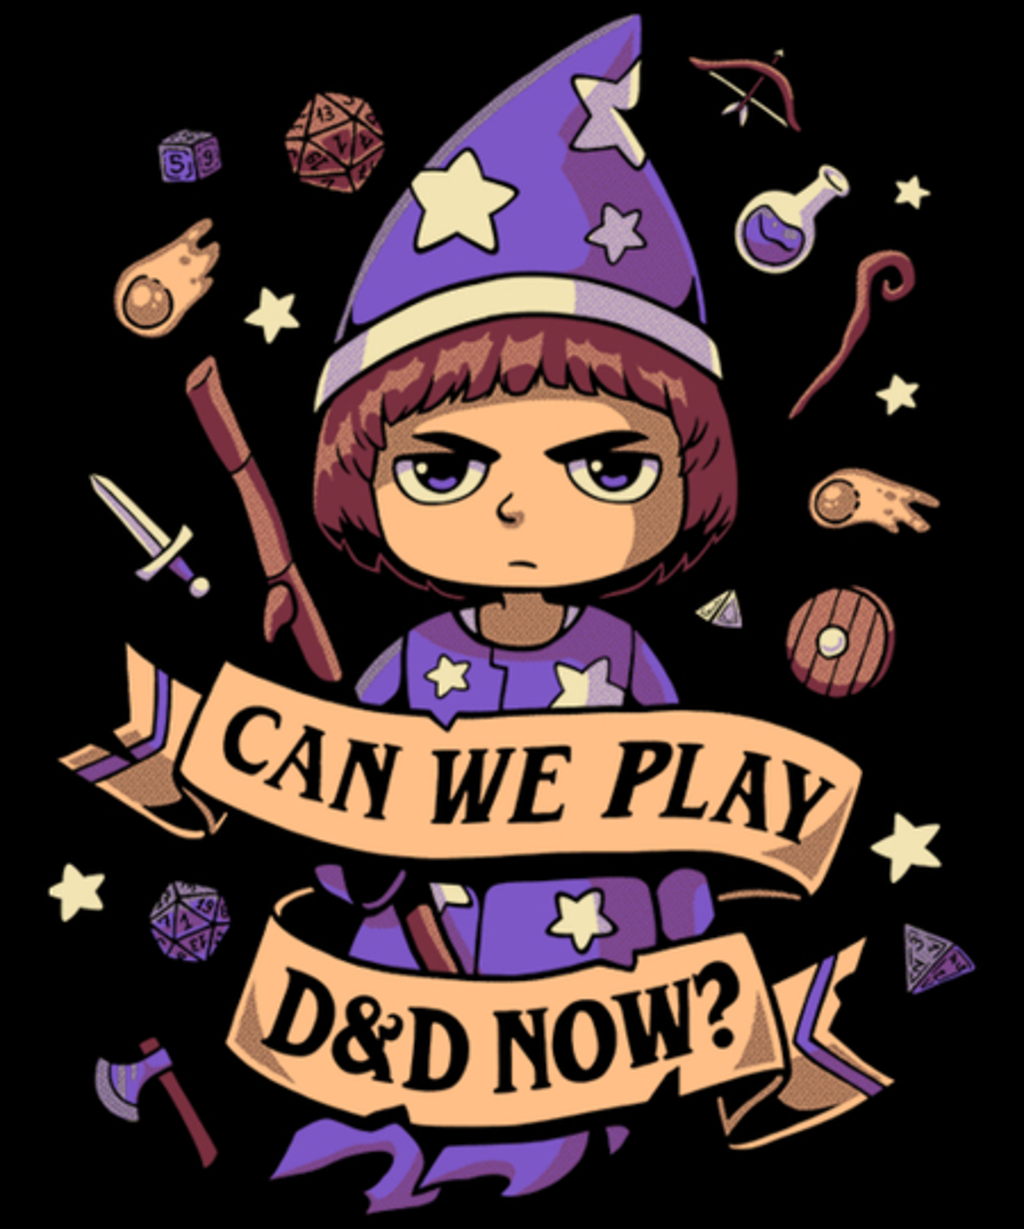 Qwertee: Will the Wise